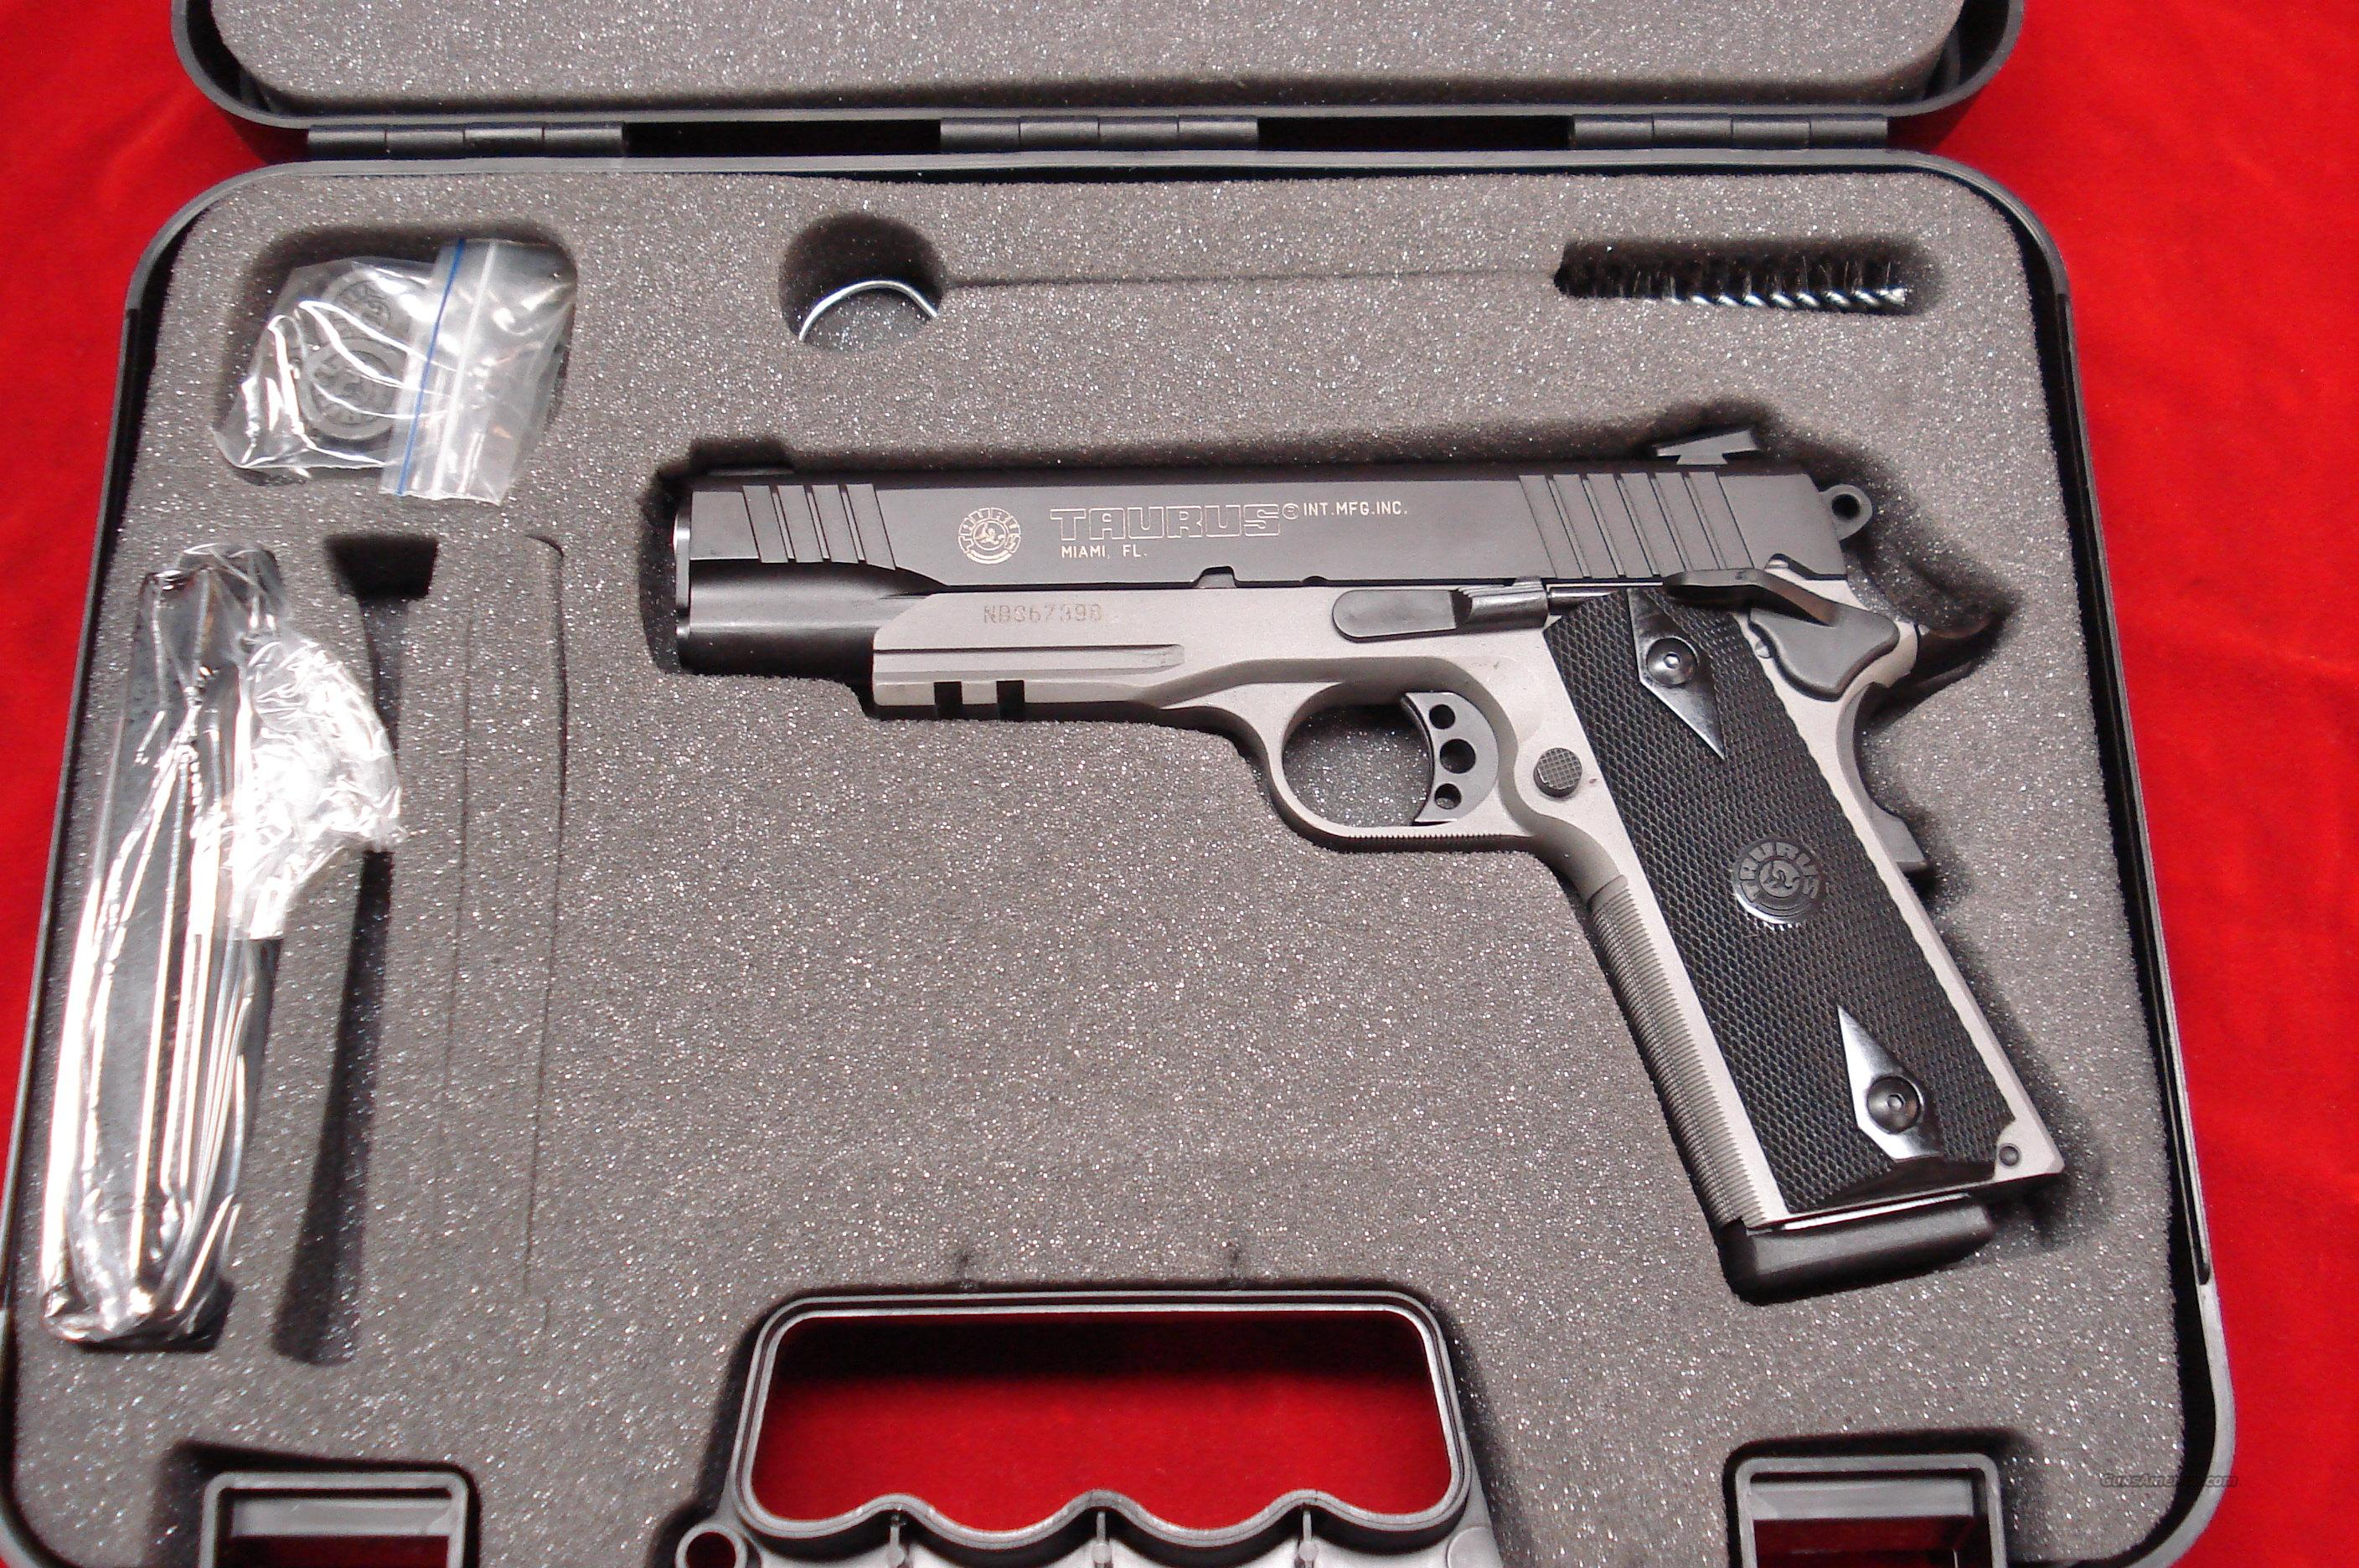 TAURUS 1911 BLUE AND GRAY ALLOY W/TAC RAIL NEW  Guns > Pistols > Taurus Pistols/Revolvers > Pistols > Steel Frame